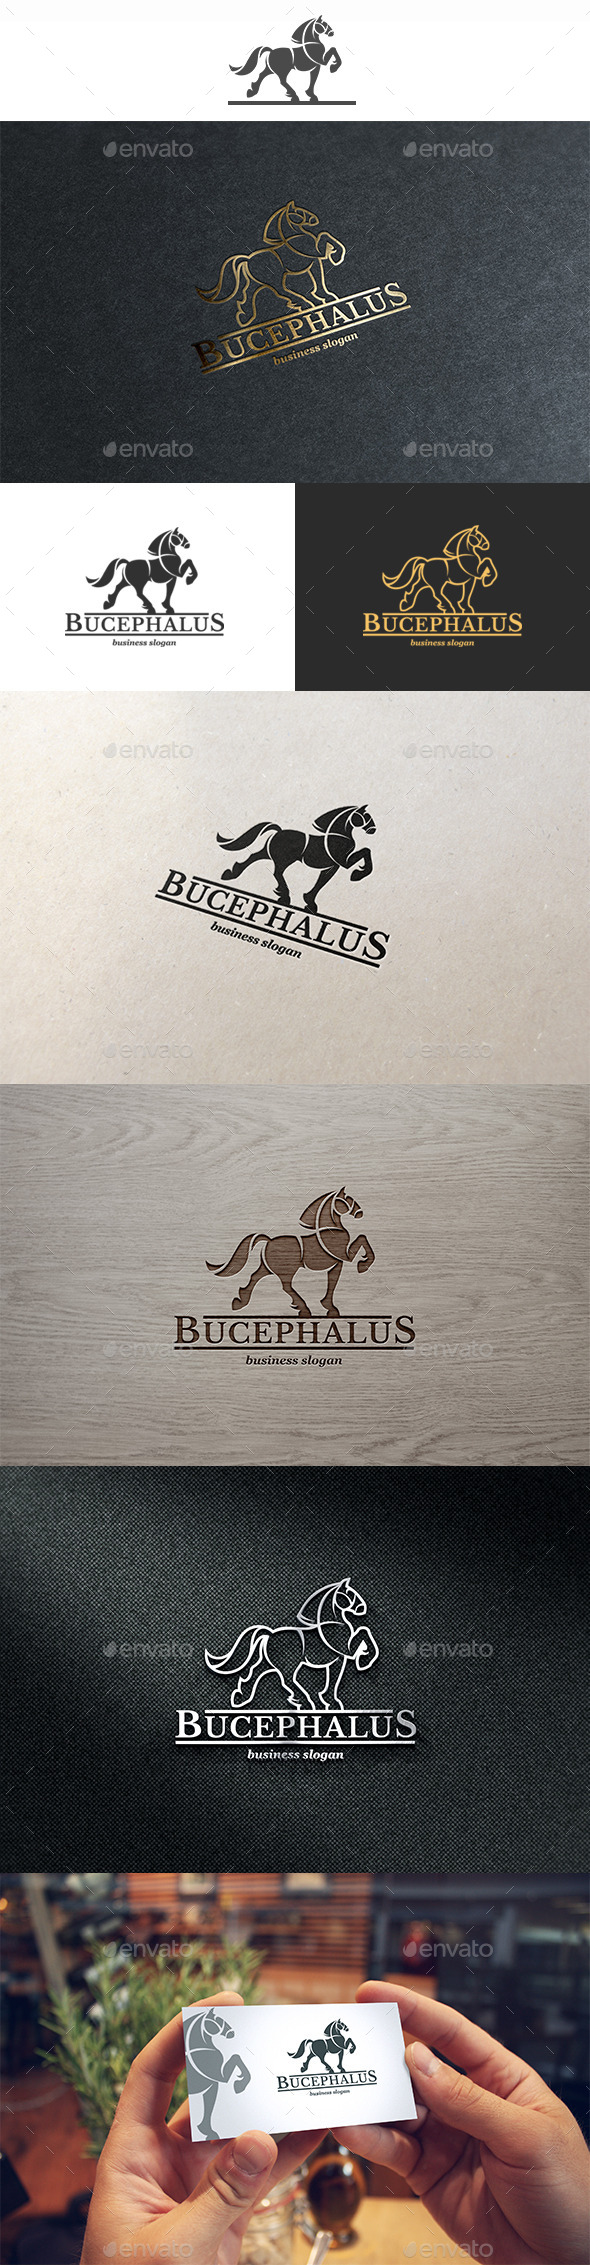 Bucephalus Logo - Animals Logo Templates